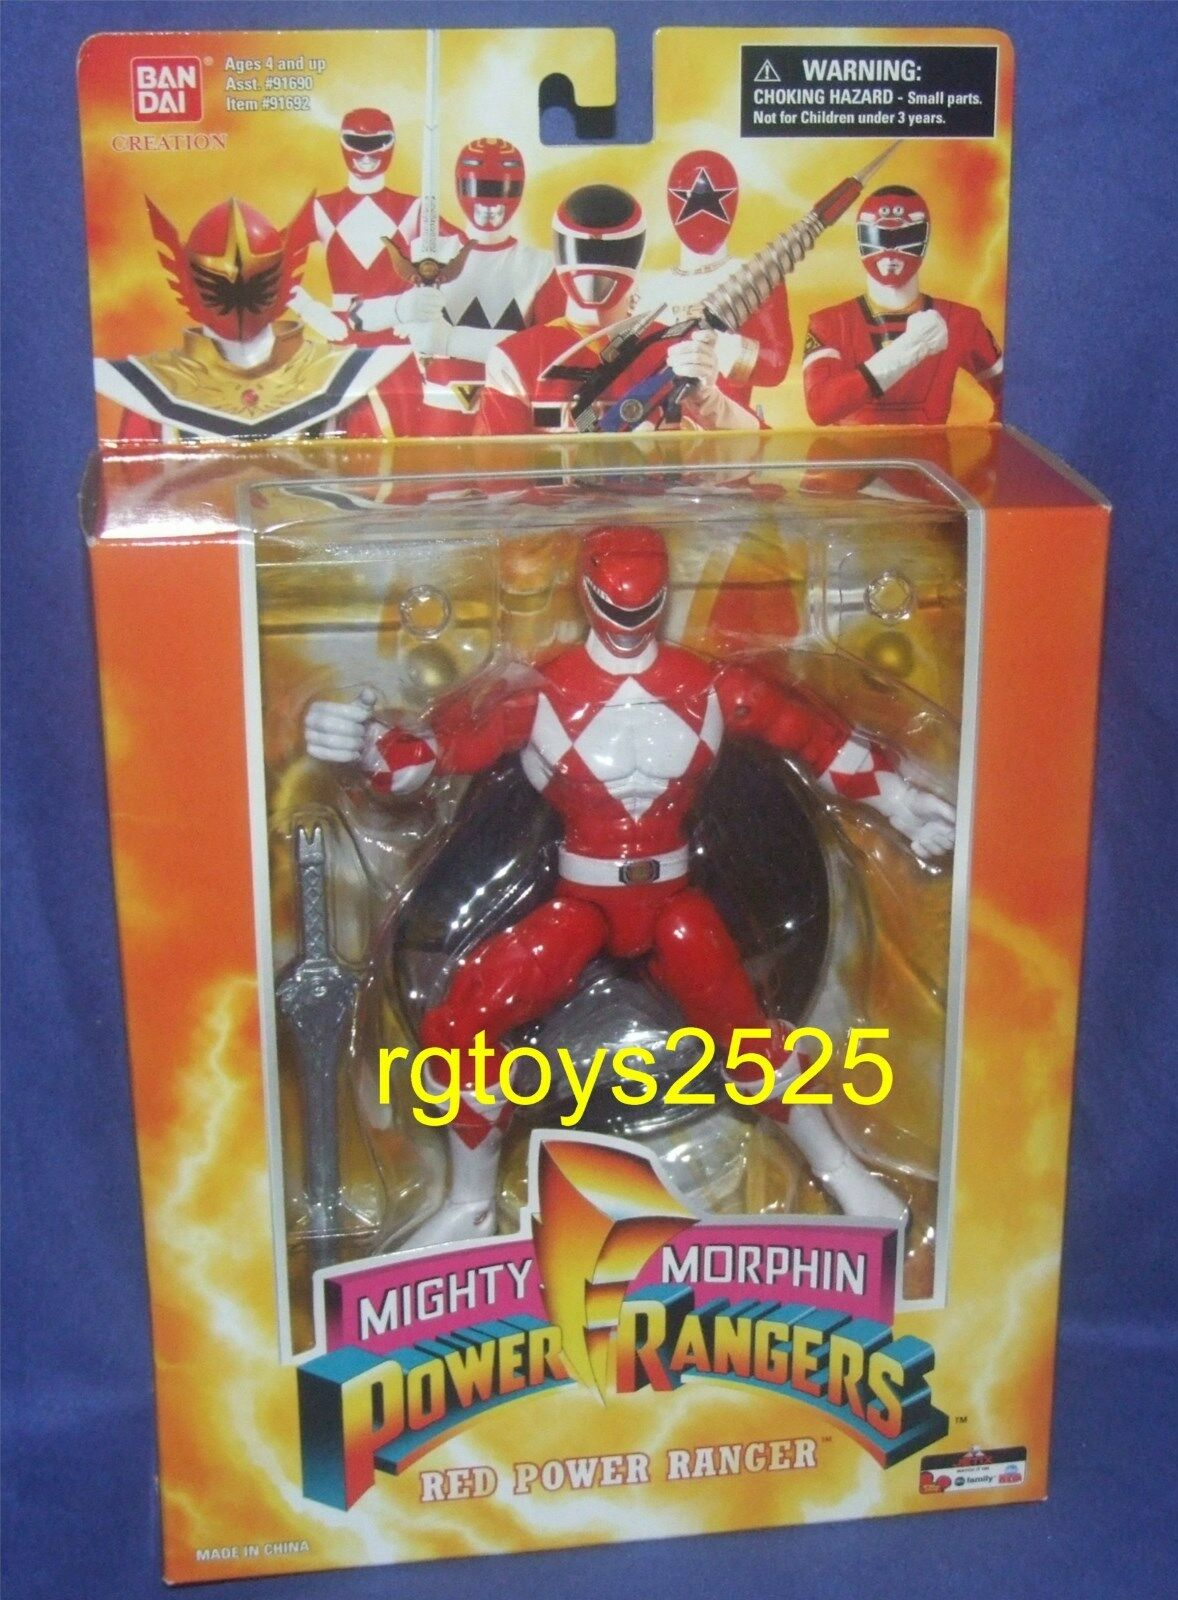 Mighty Morphin energia Rangers 7 rosso energia Ranger nuovo w Ste Factory Sealed 2006